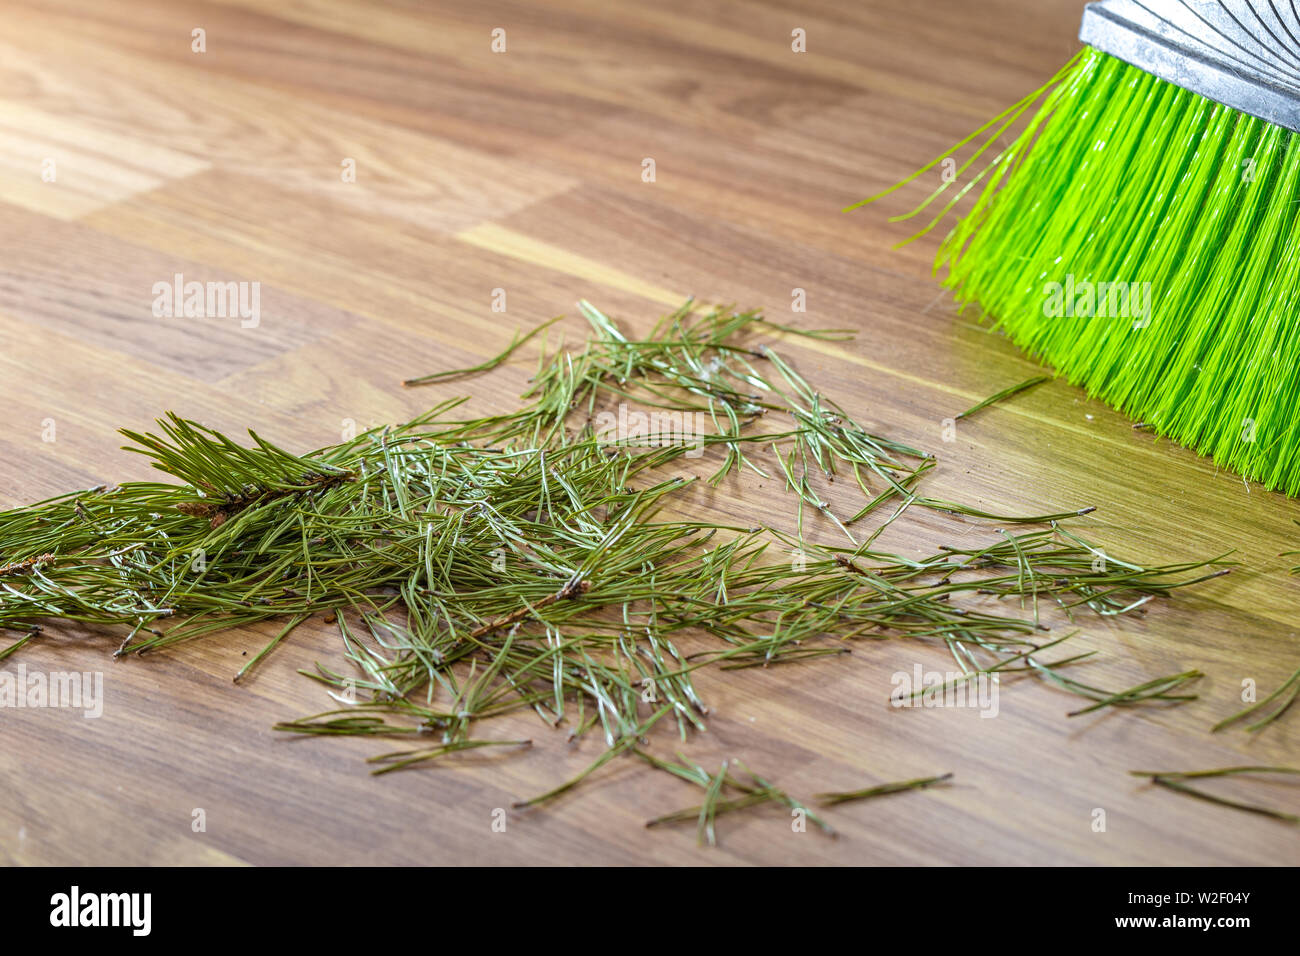 Crumbled needles from the Christmas tree on the floor. - Stock Image